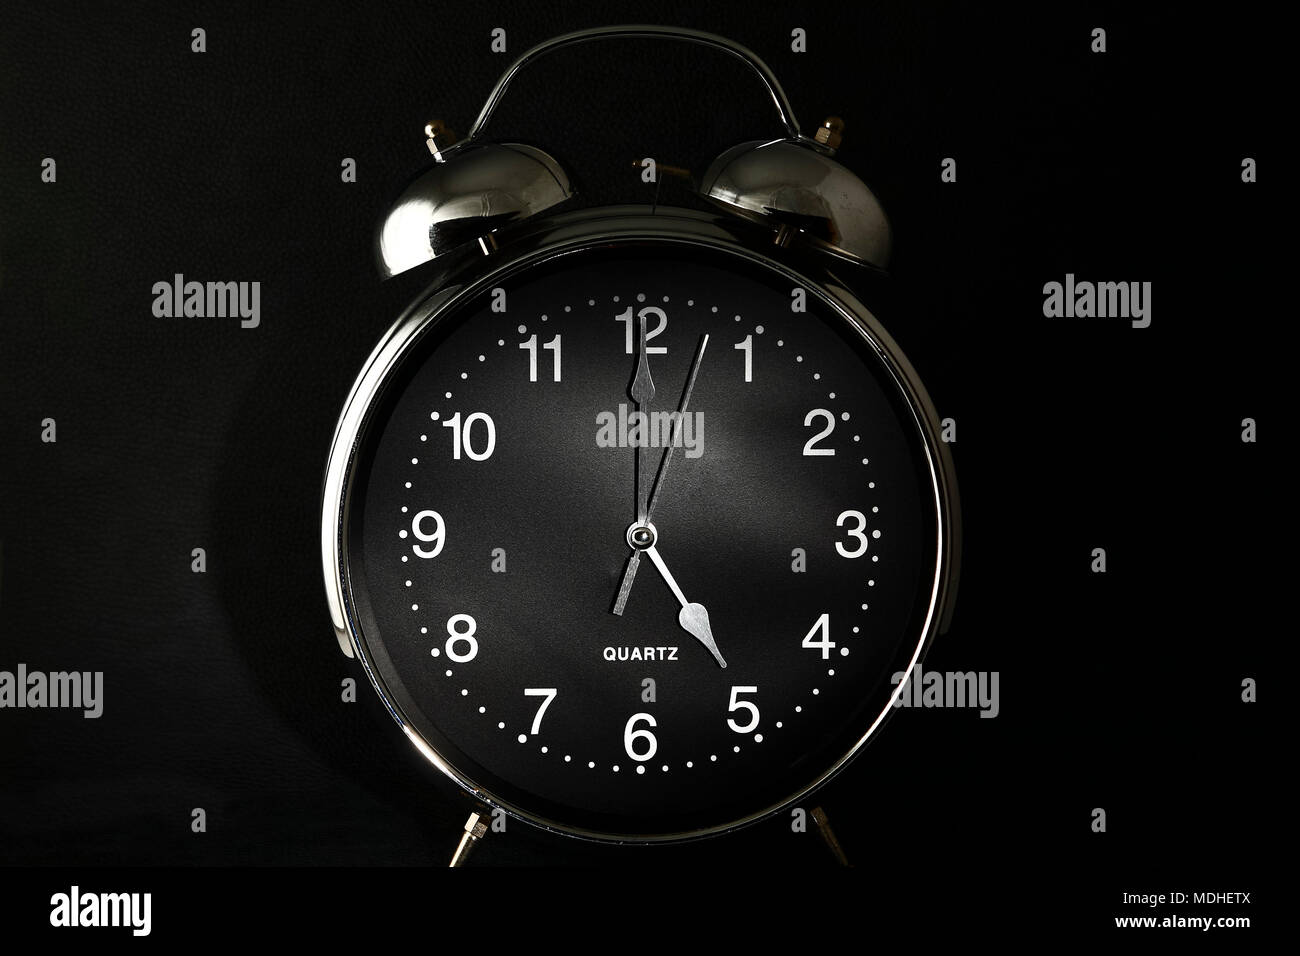 Old retro alarm clock with the hands set to 5:00 am or pm - Stock Image